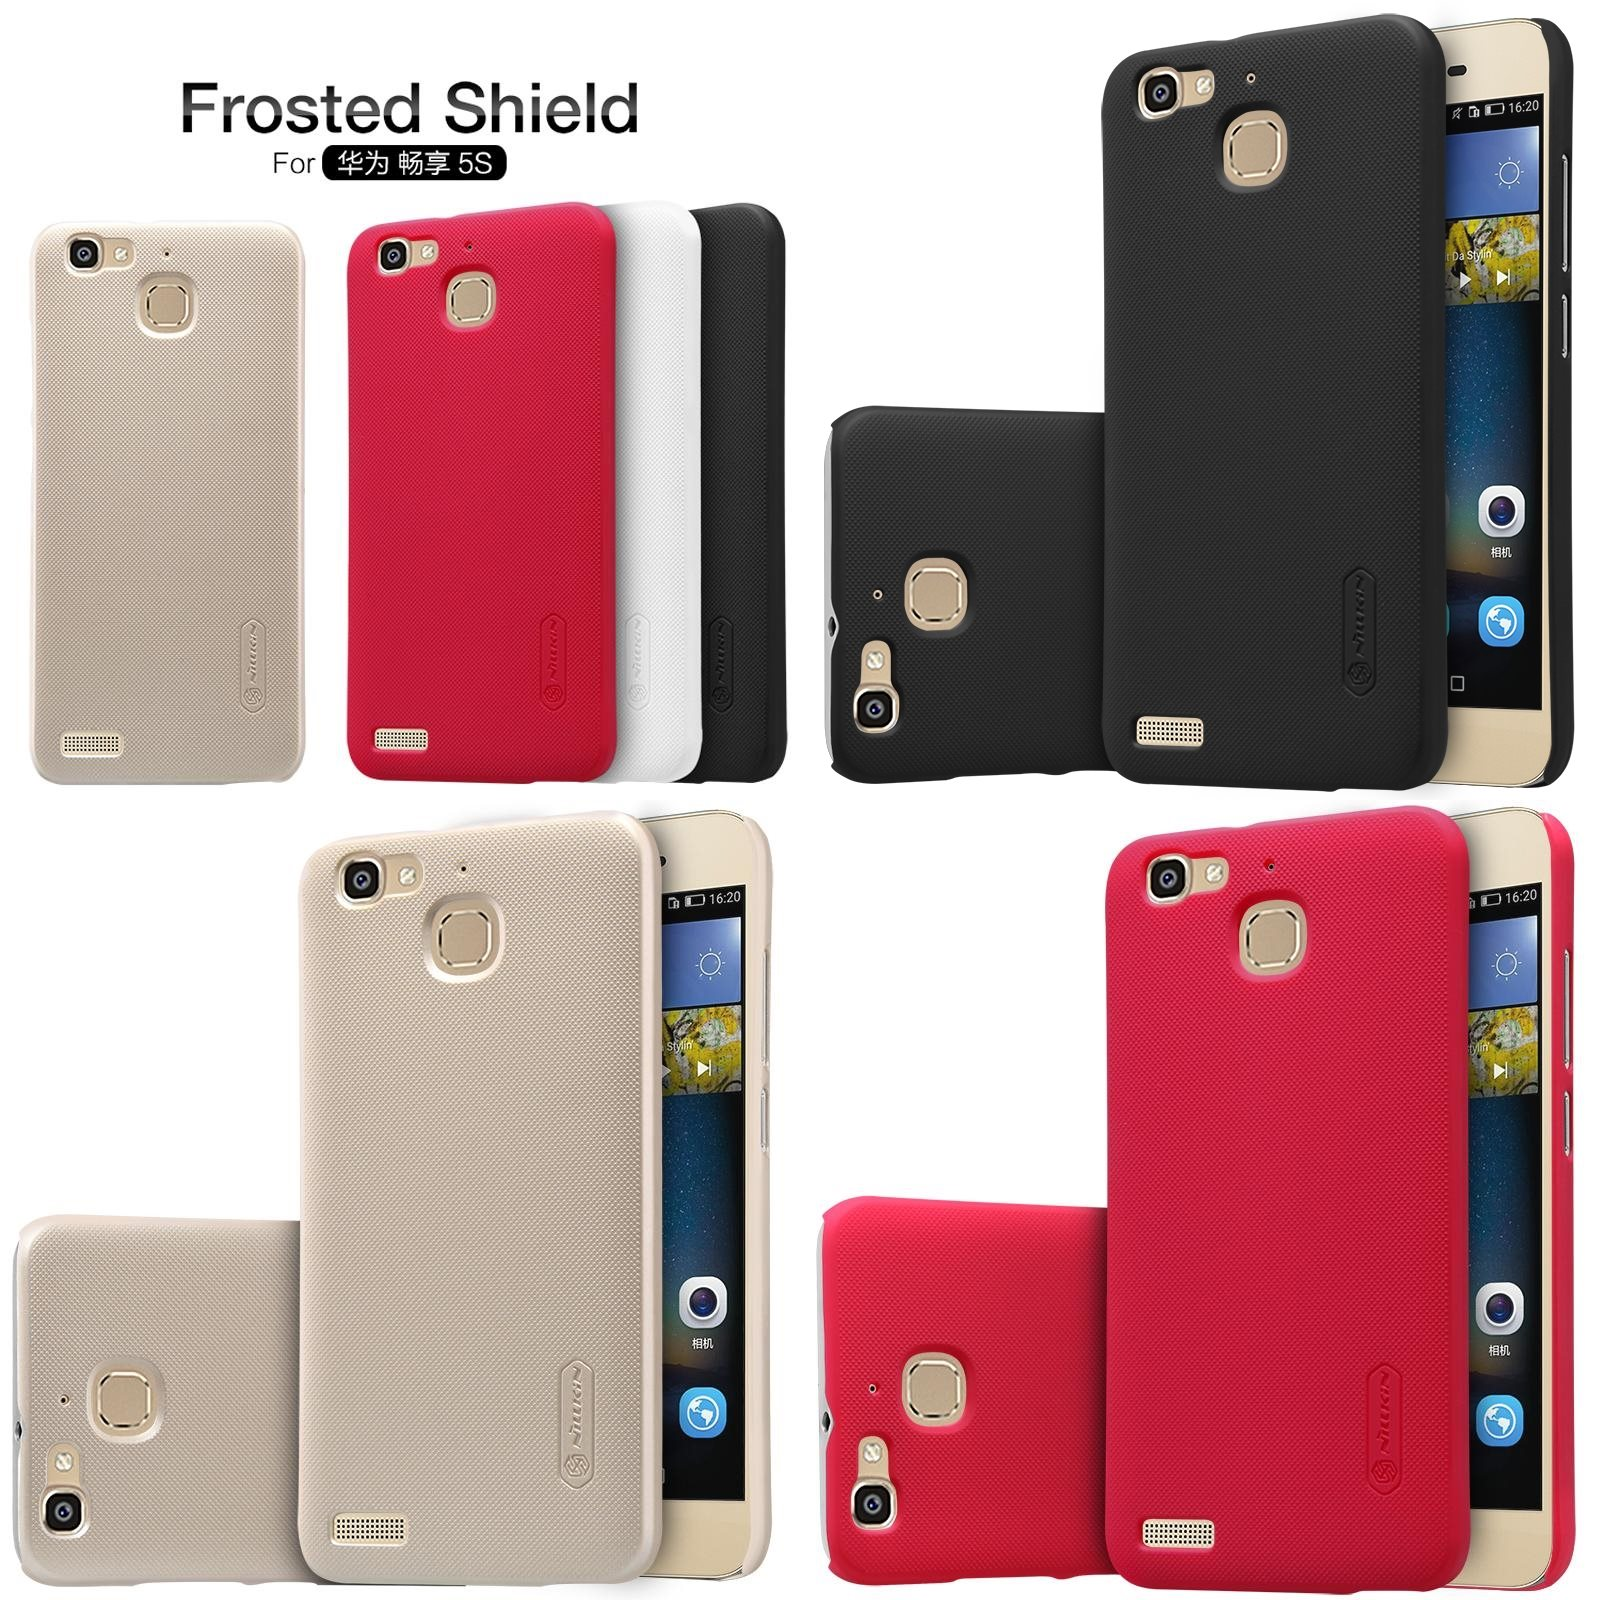 Huawei-Enjoy-5S-1-Nillkin-Frosted-Shield-Hard-Back-Cover-Case-For-Huawei-Enjoy-5S-Gift-tile